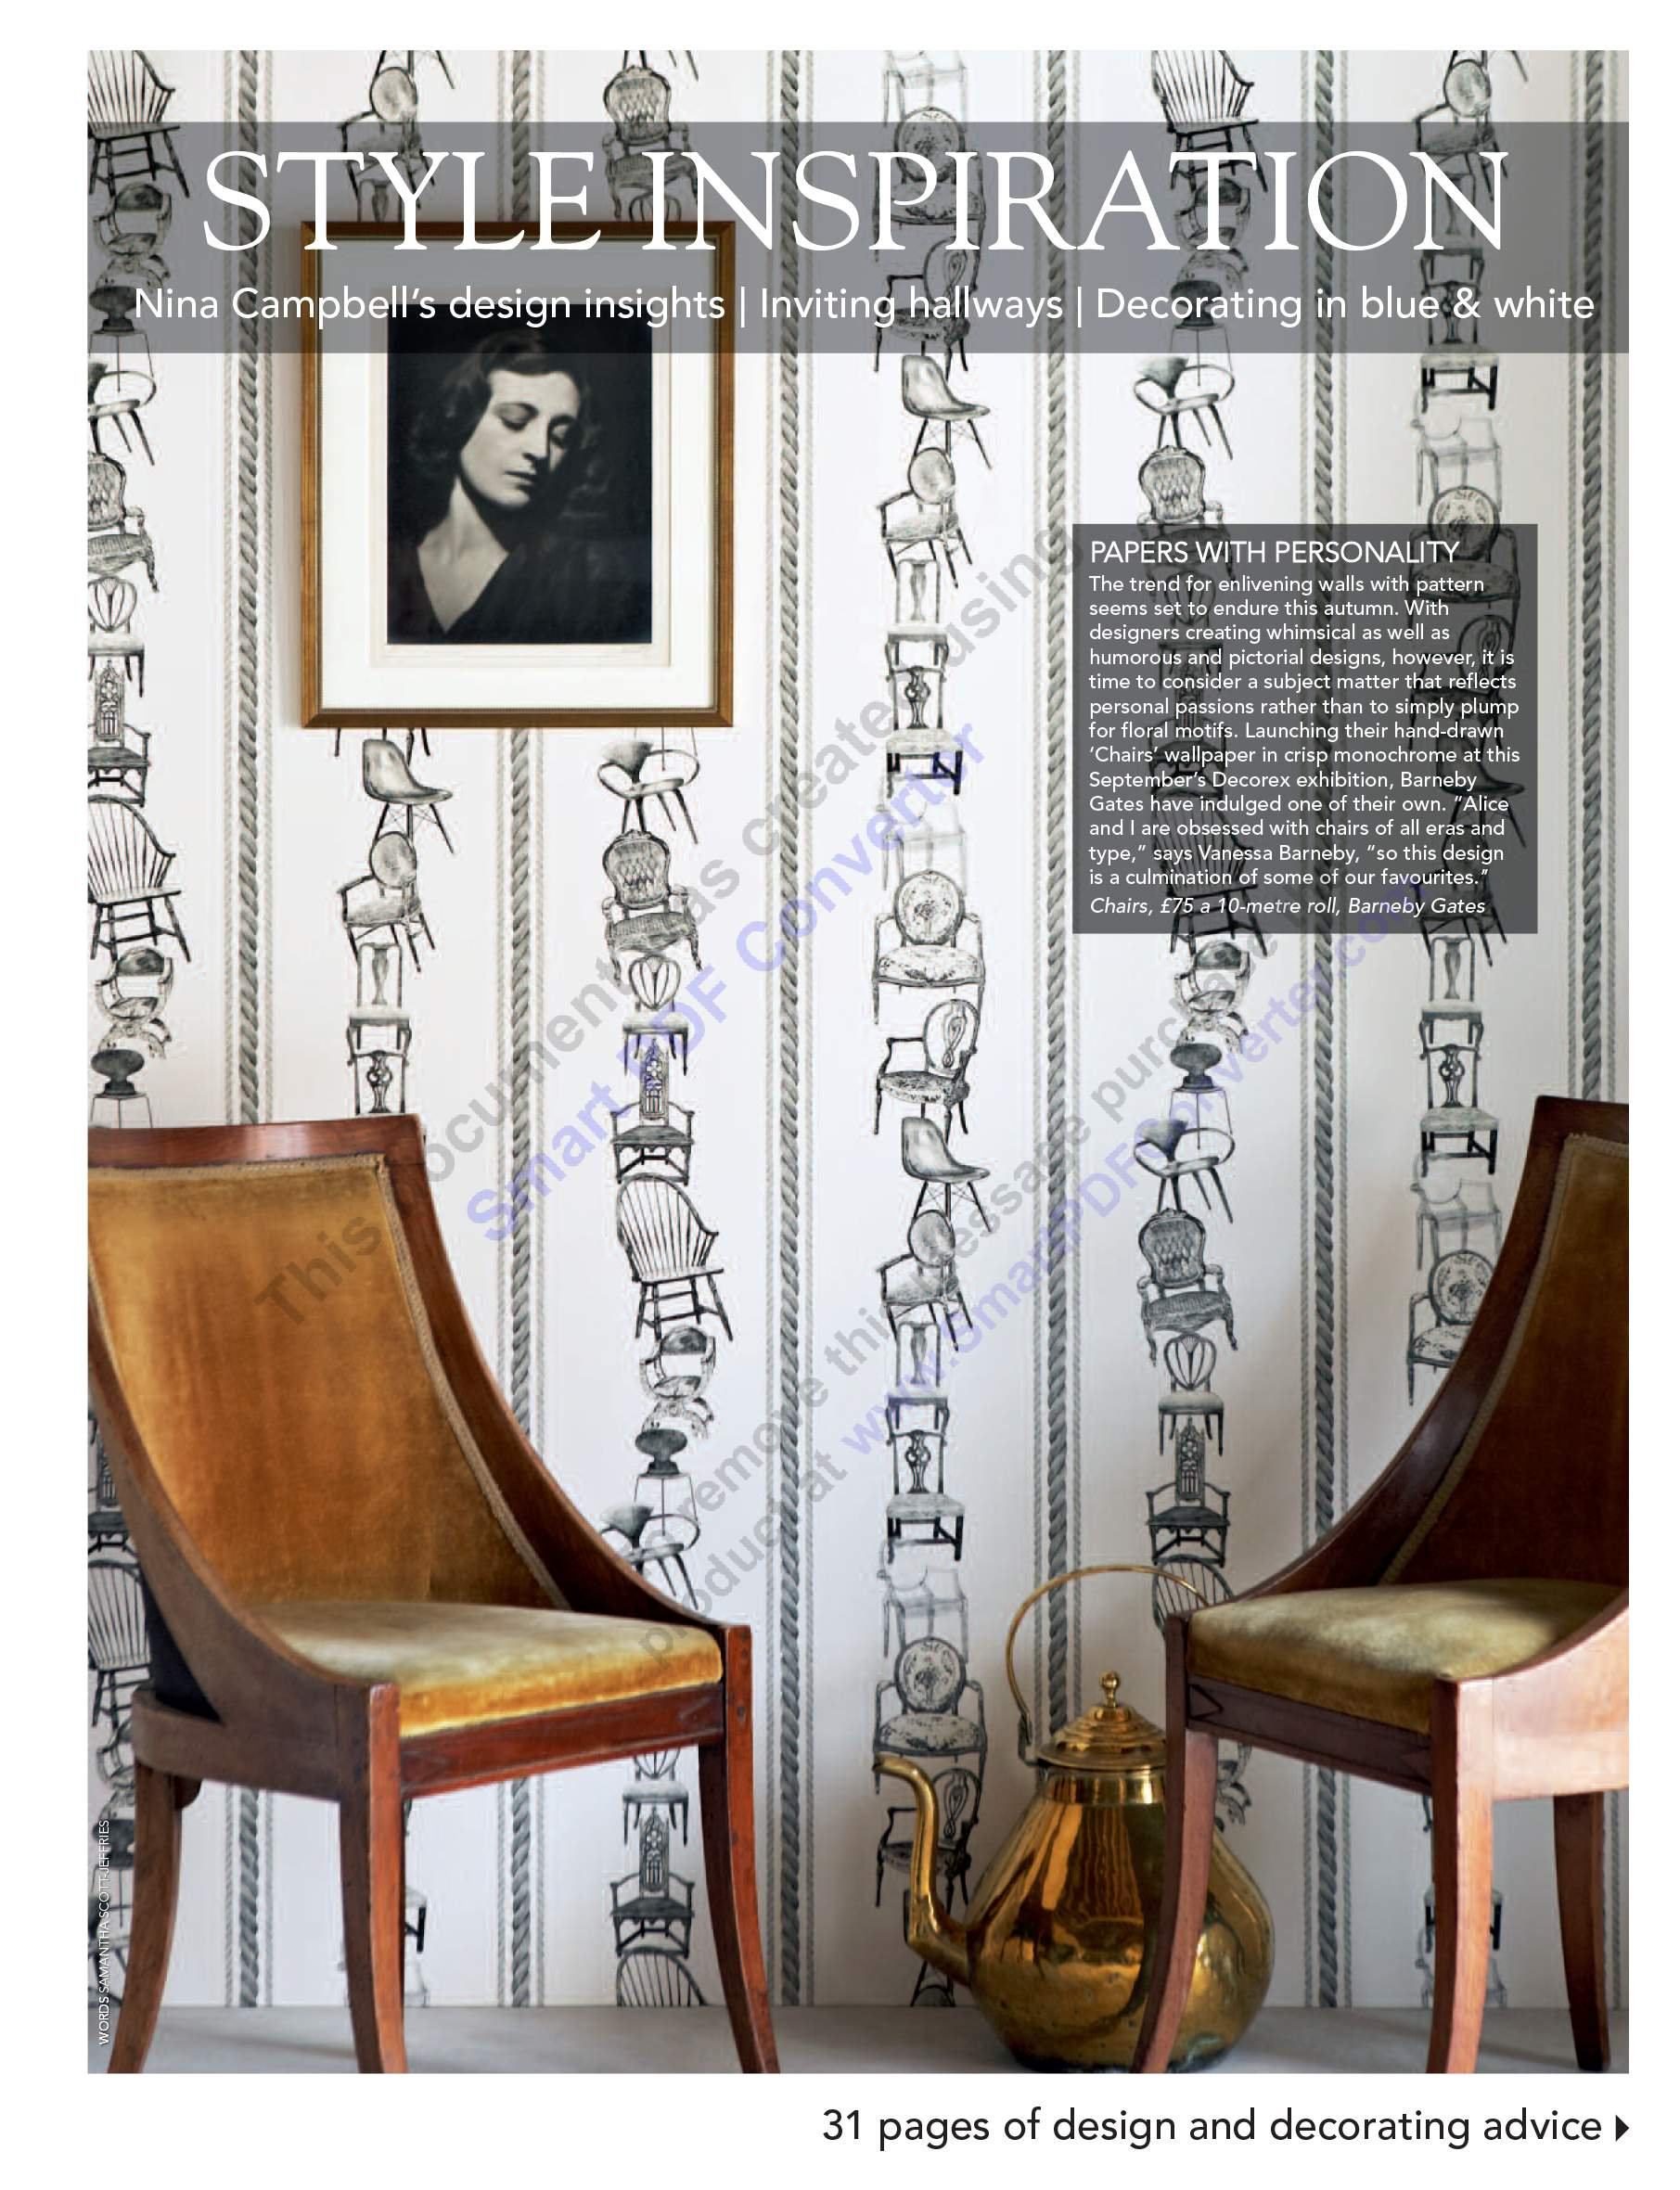 2011 Sept - English Home - article